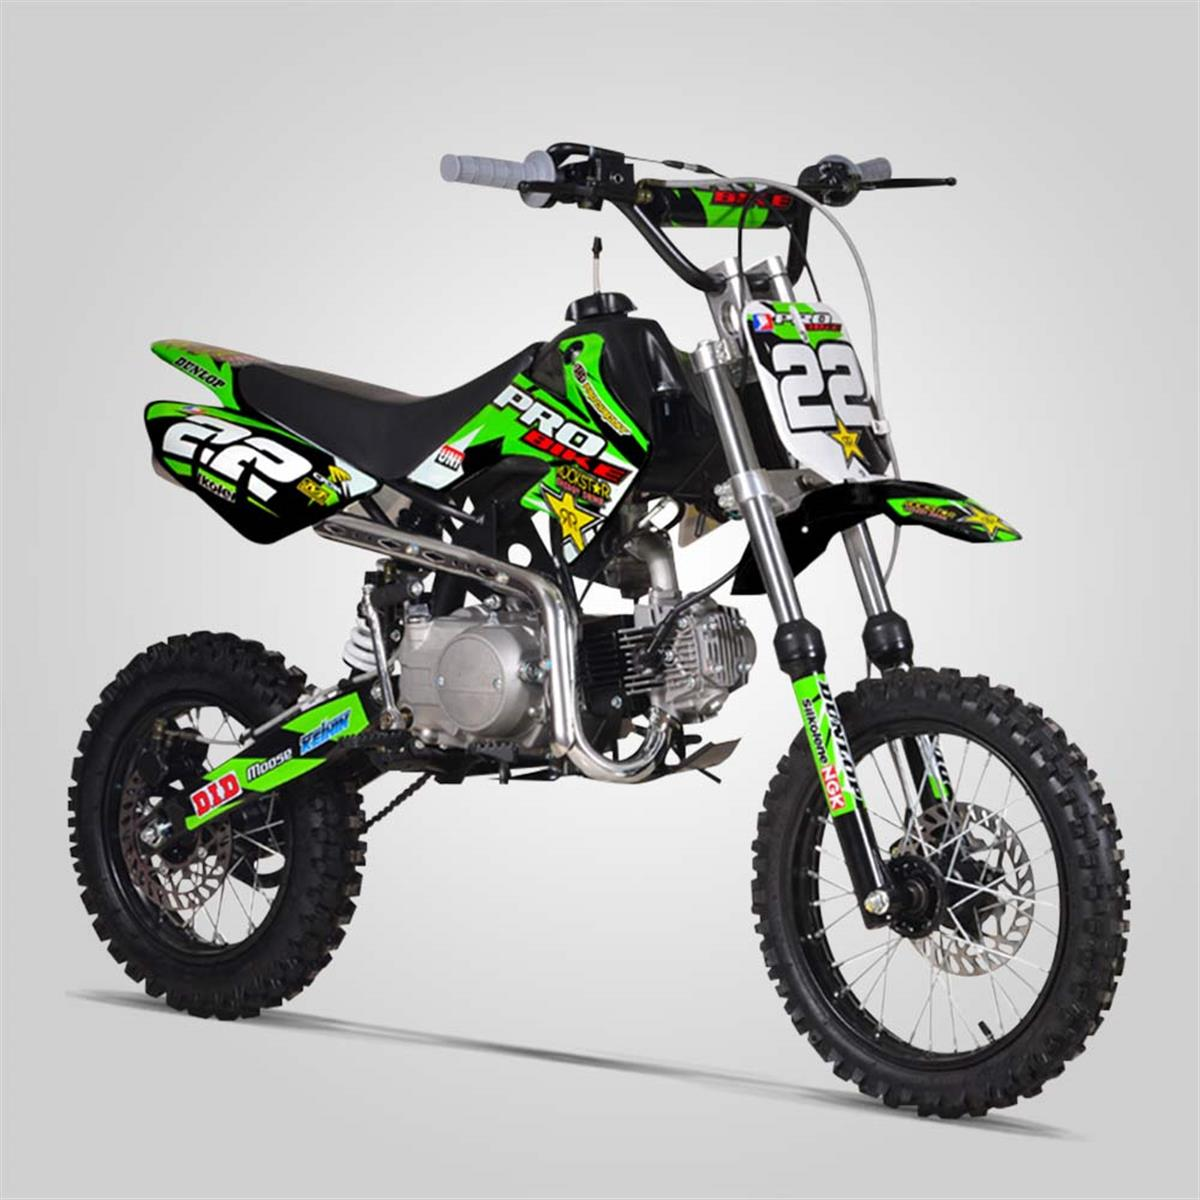 dirt bike pit bike probike 125cc dition 2017 smallmx dirt bike pit bike quads minimoto. Black Bedroom Furniture Sets. Home Design Ideas